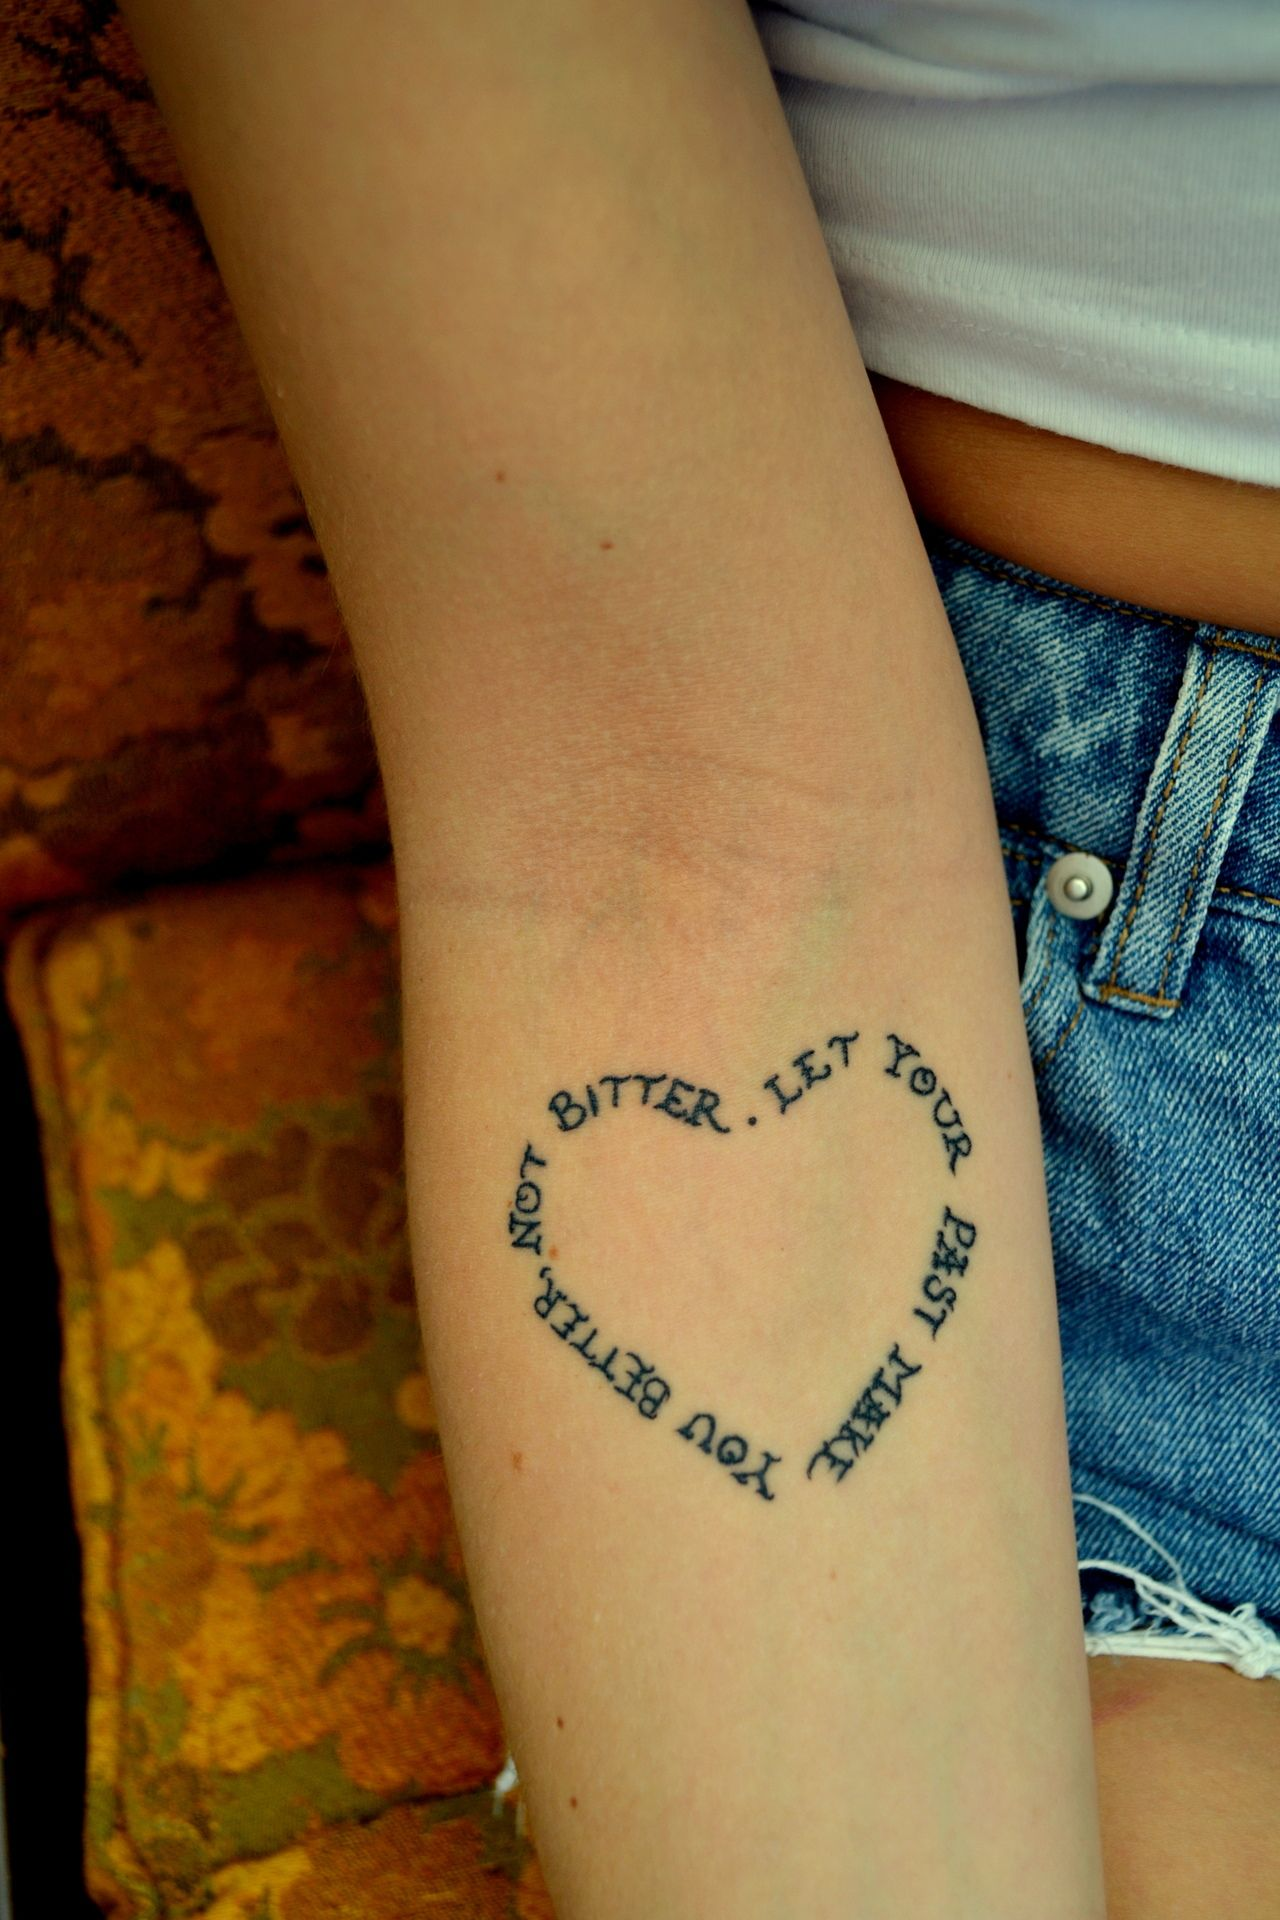 Meaningful Words In The Shape Of A Heart A Nice Concept For A Post Mastectomy Tattoo P Ink Org Tattoos Heart Temporary Tattoos Love Tattoos